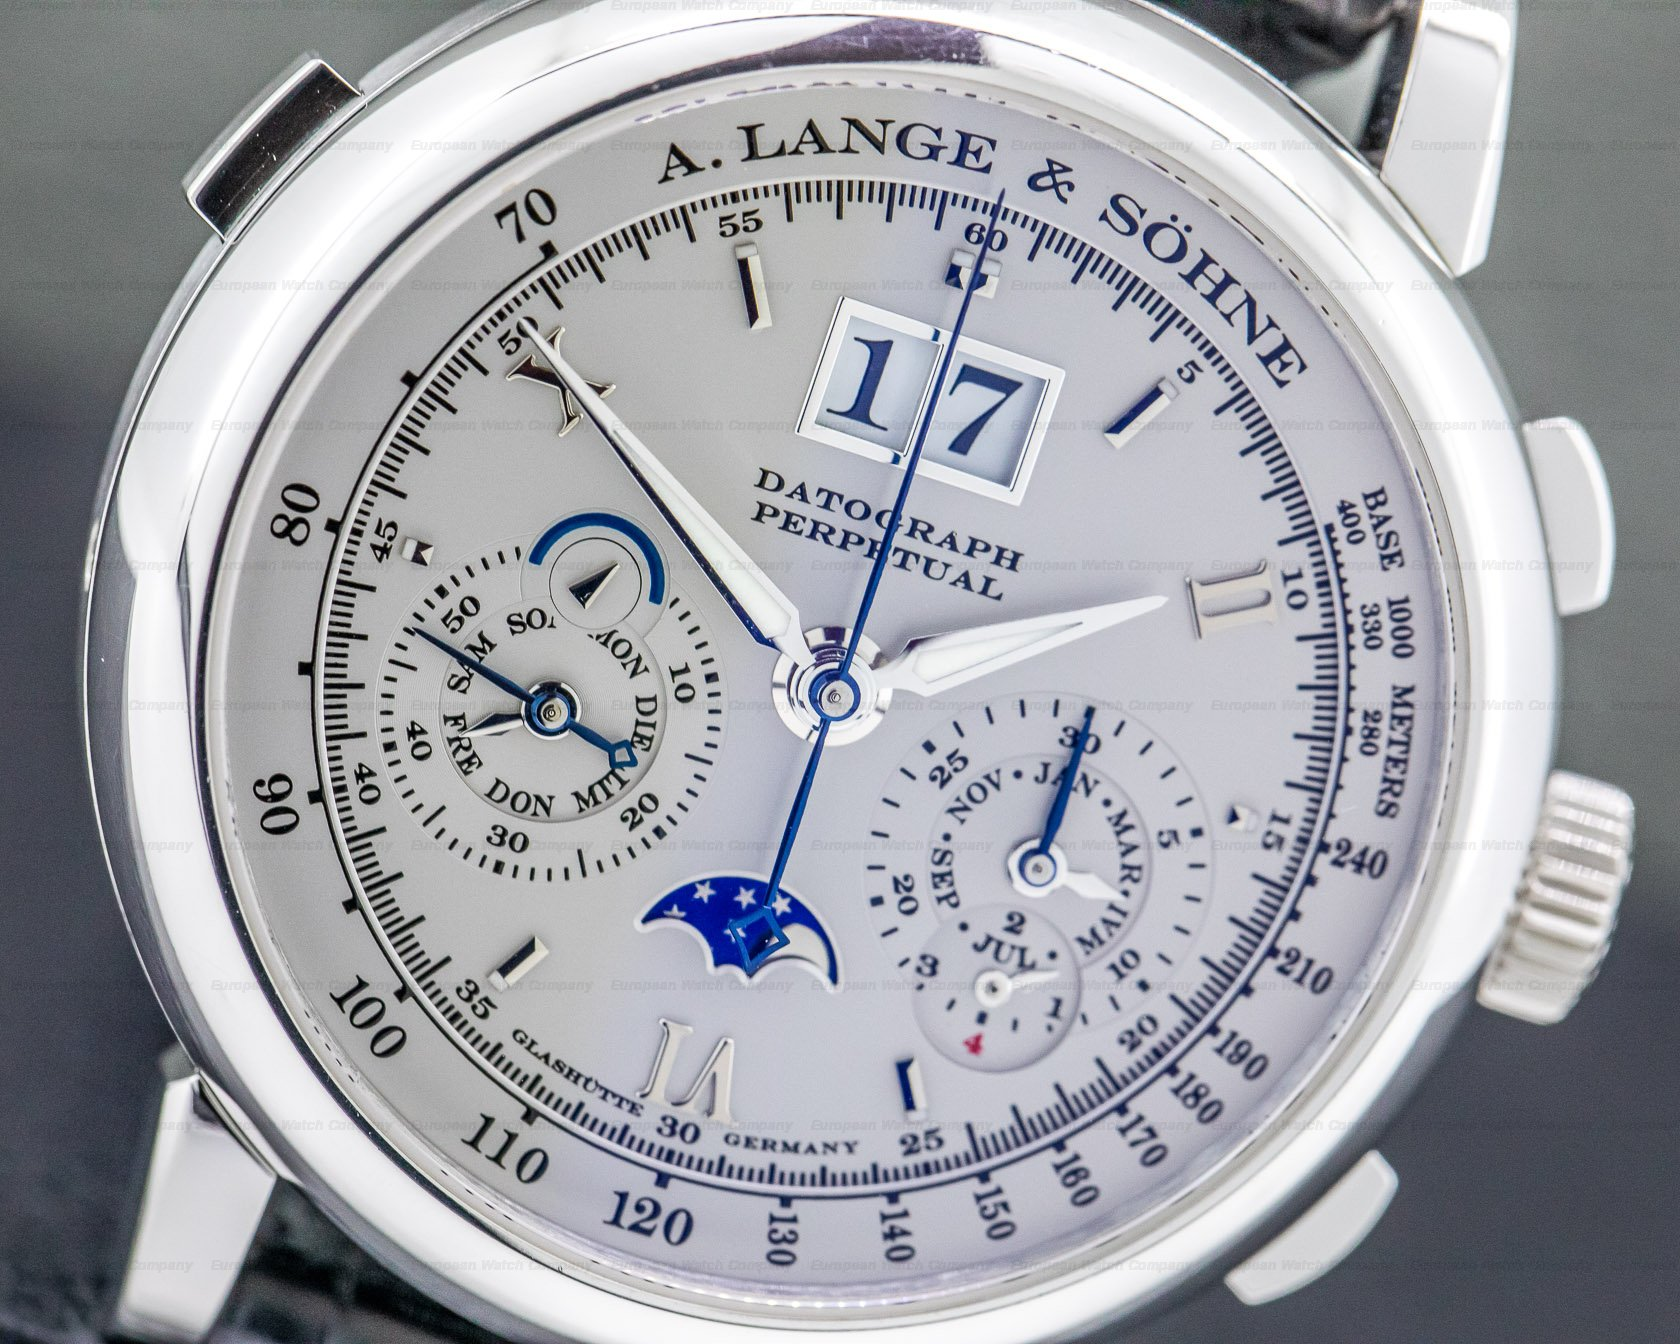 A. Lange and Sohne 410.025 Datograph Perpetual Calendar Chronograph Platinum